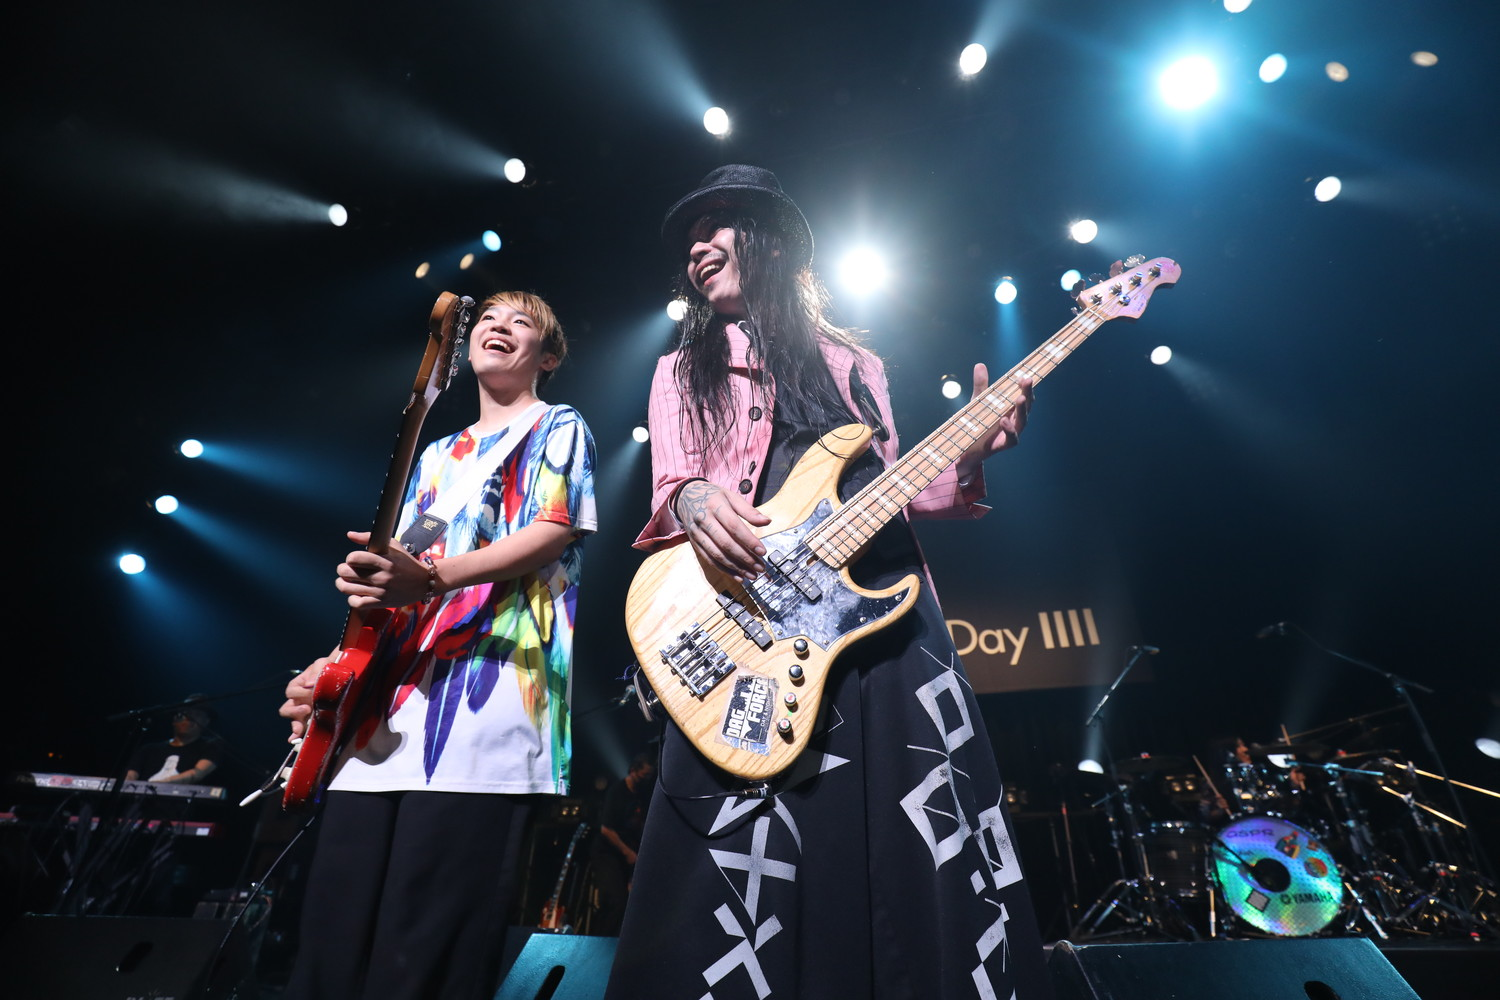 「THE BASS DAY LIVE 2018」